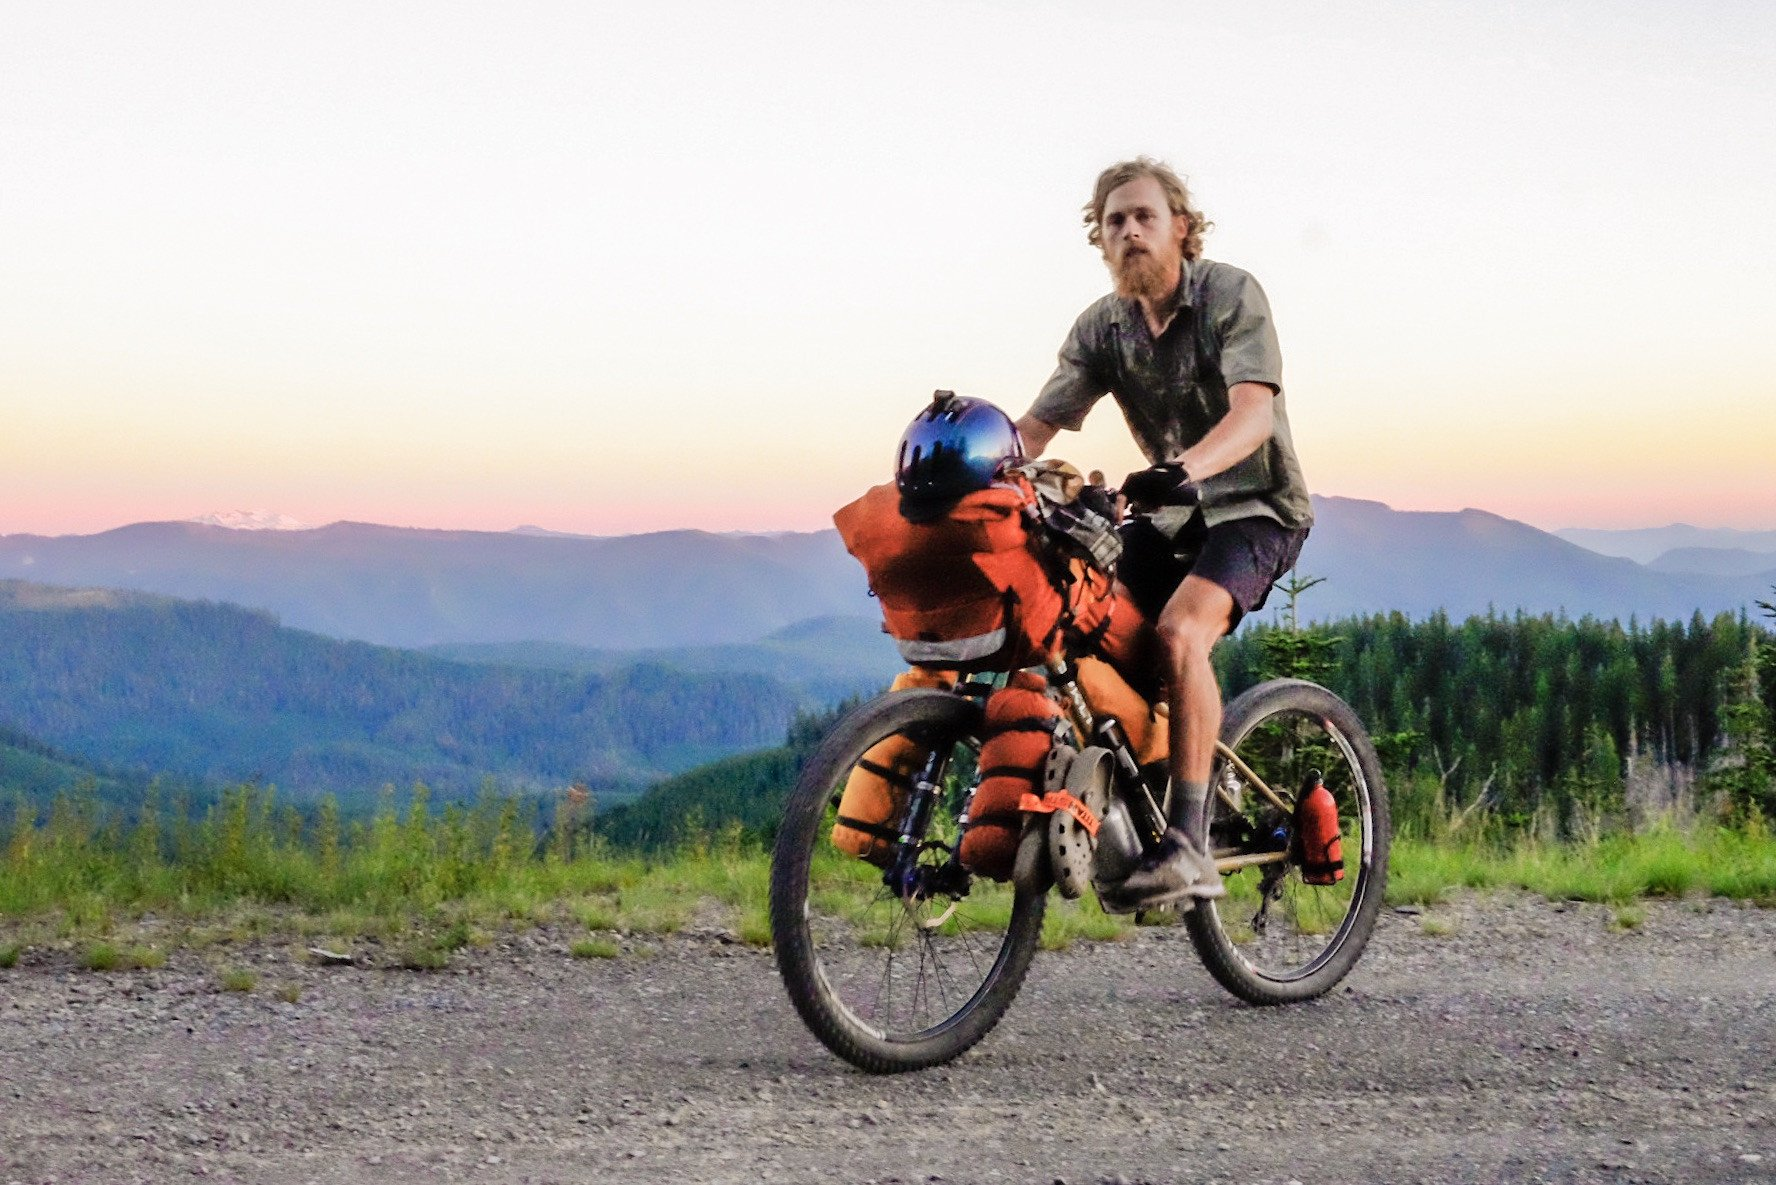 Roadrunner_Bikepacking_Bags_4.jpg